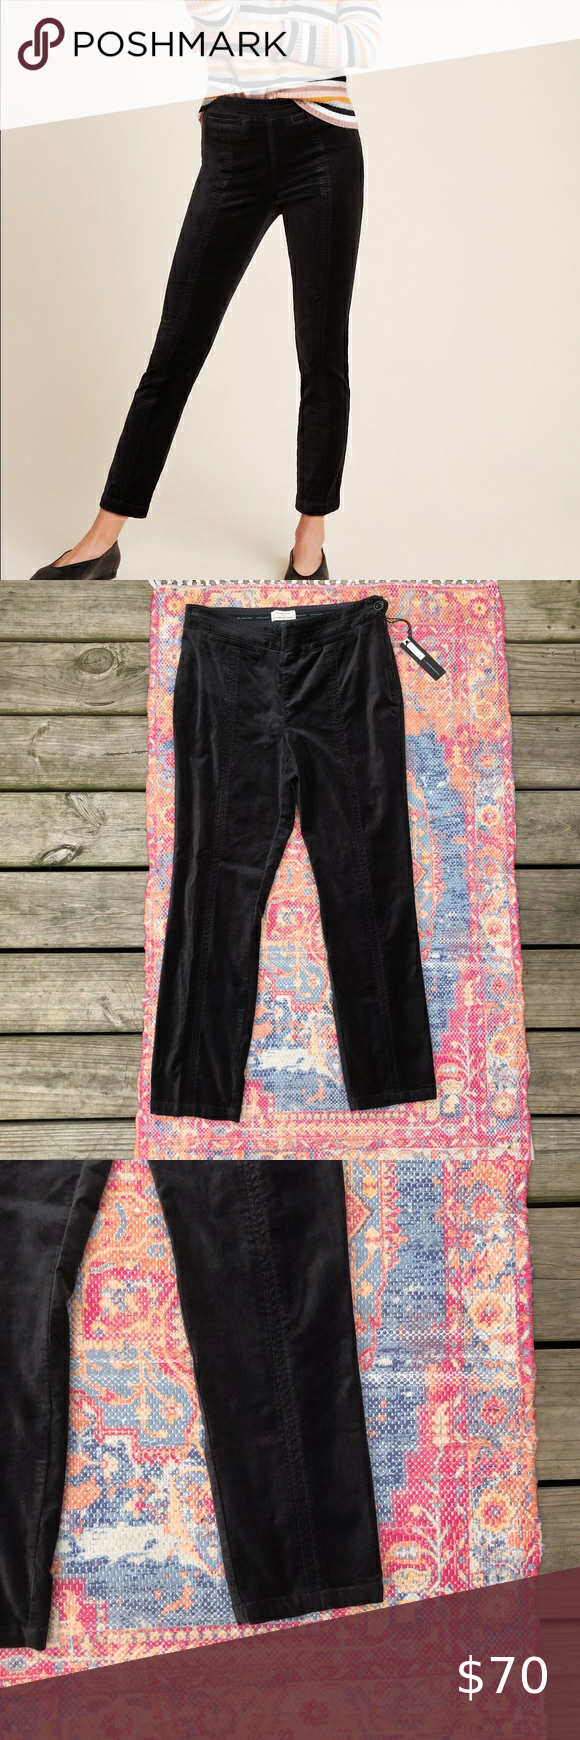 Nwt Anthropologie The Essential Twill Trousers Nwt Anthropologie The Essential Twill Black Velvet Slim Trous Trouser Pants Women Pants For Women Slim Trousers [ 1740 x 580 Pixel ]